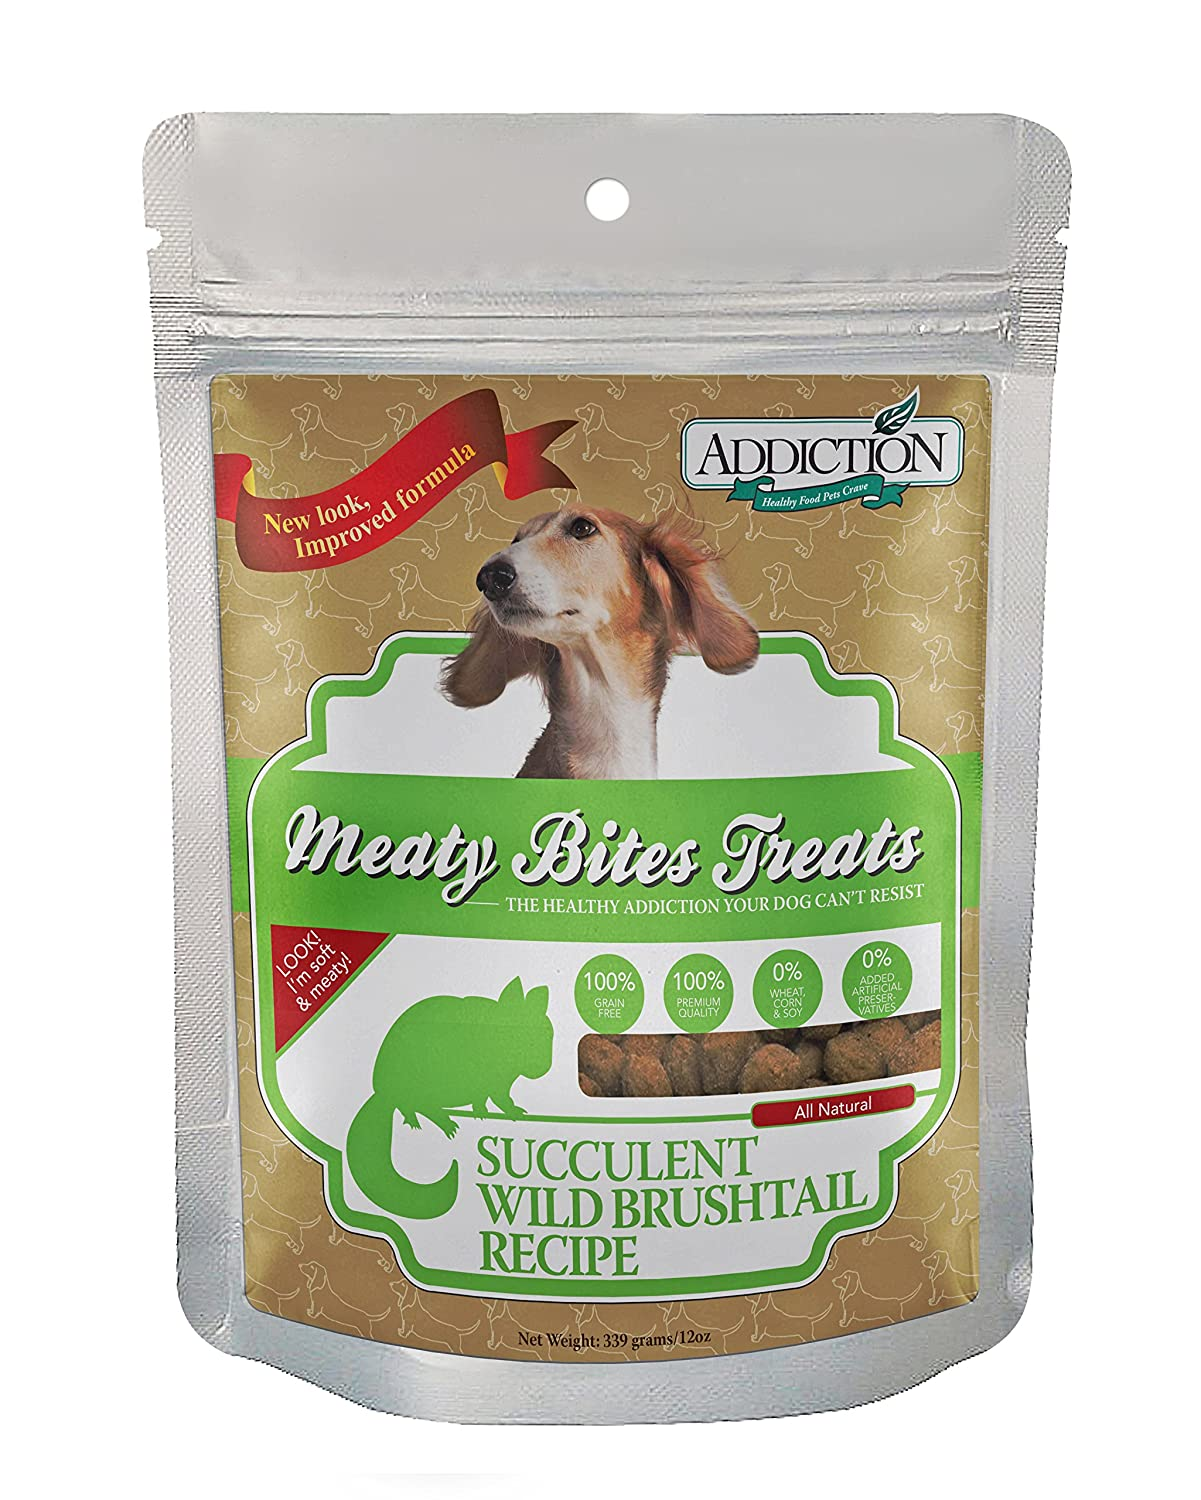 12 Ounce Addiction Wild Brushtail Meaty Bites Grain Free Dog Treats, 12 Oz.